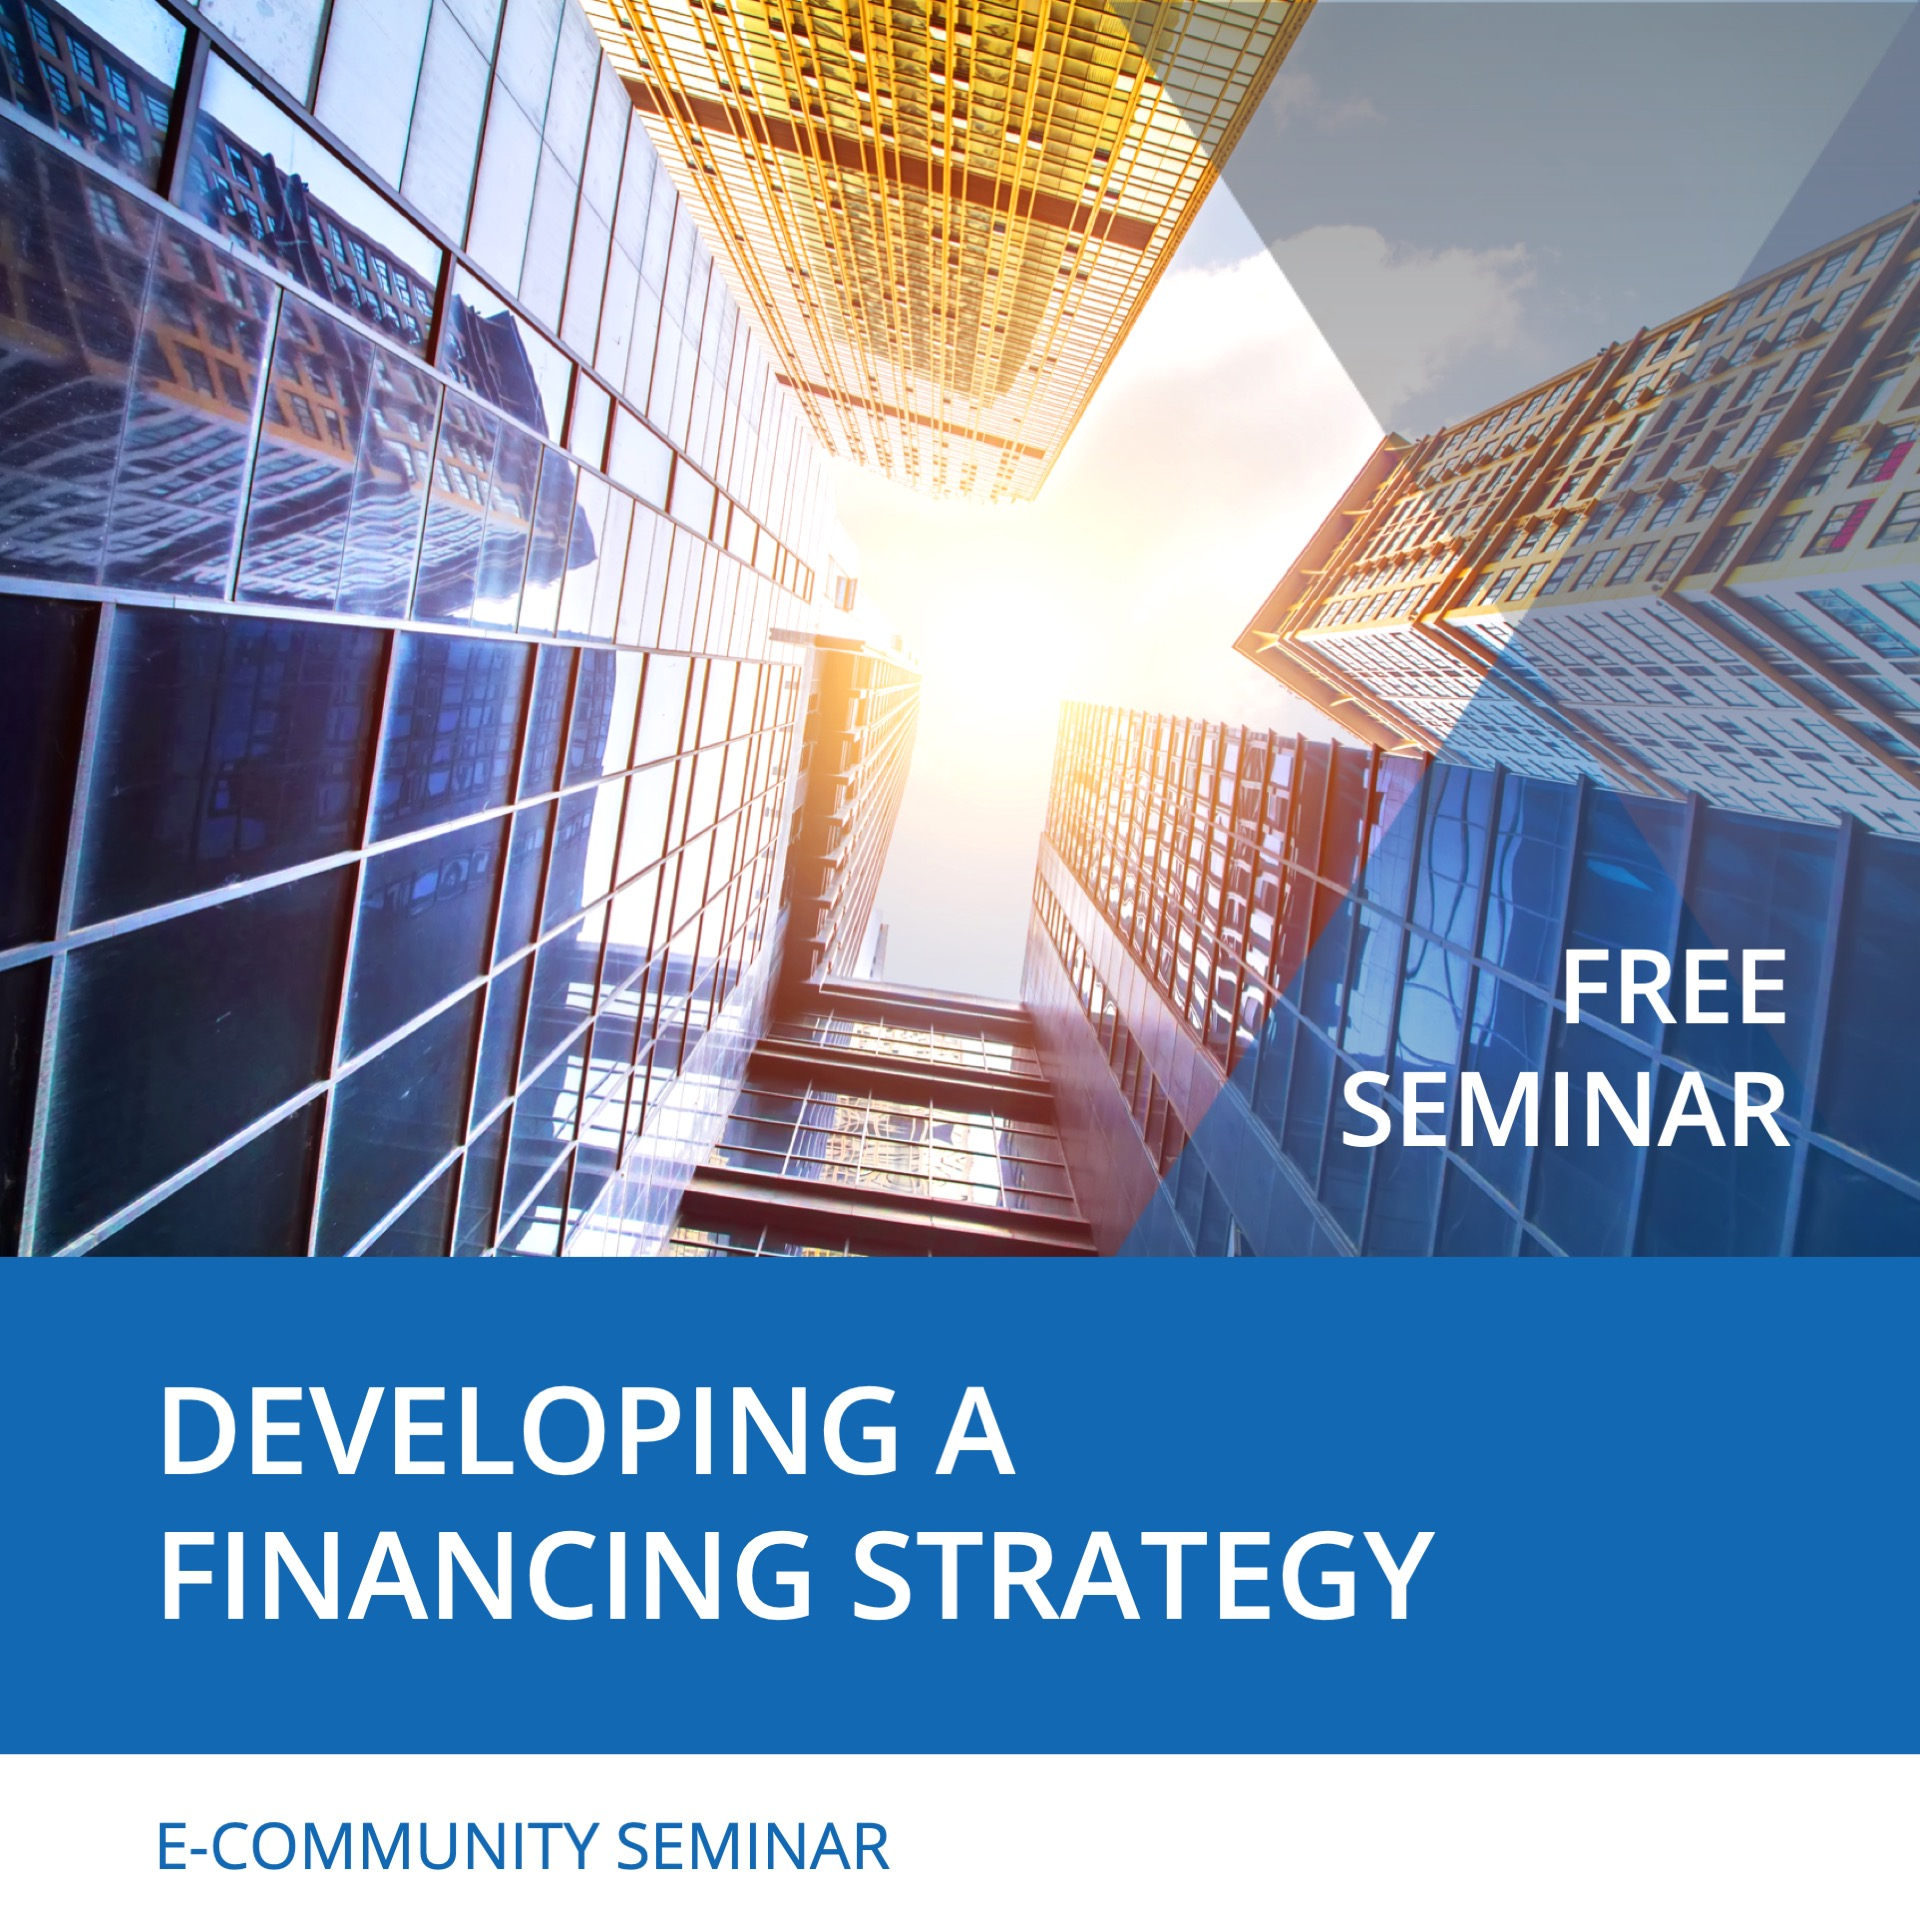 Seminar Developing a Financing Strategy - Nehemiah E-Community